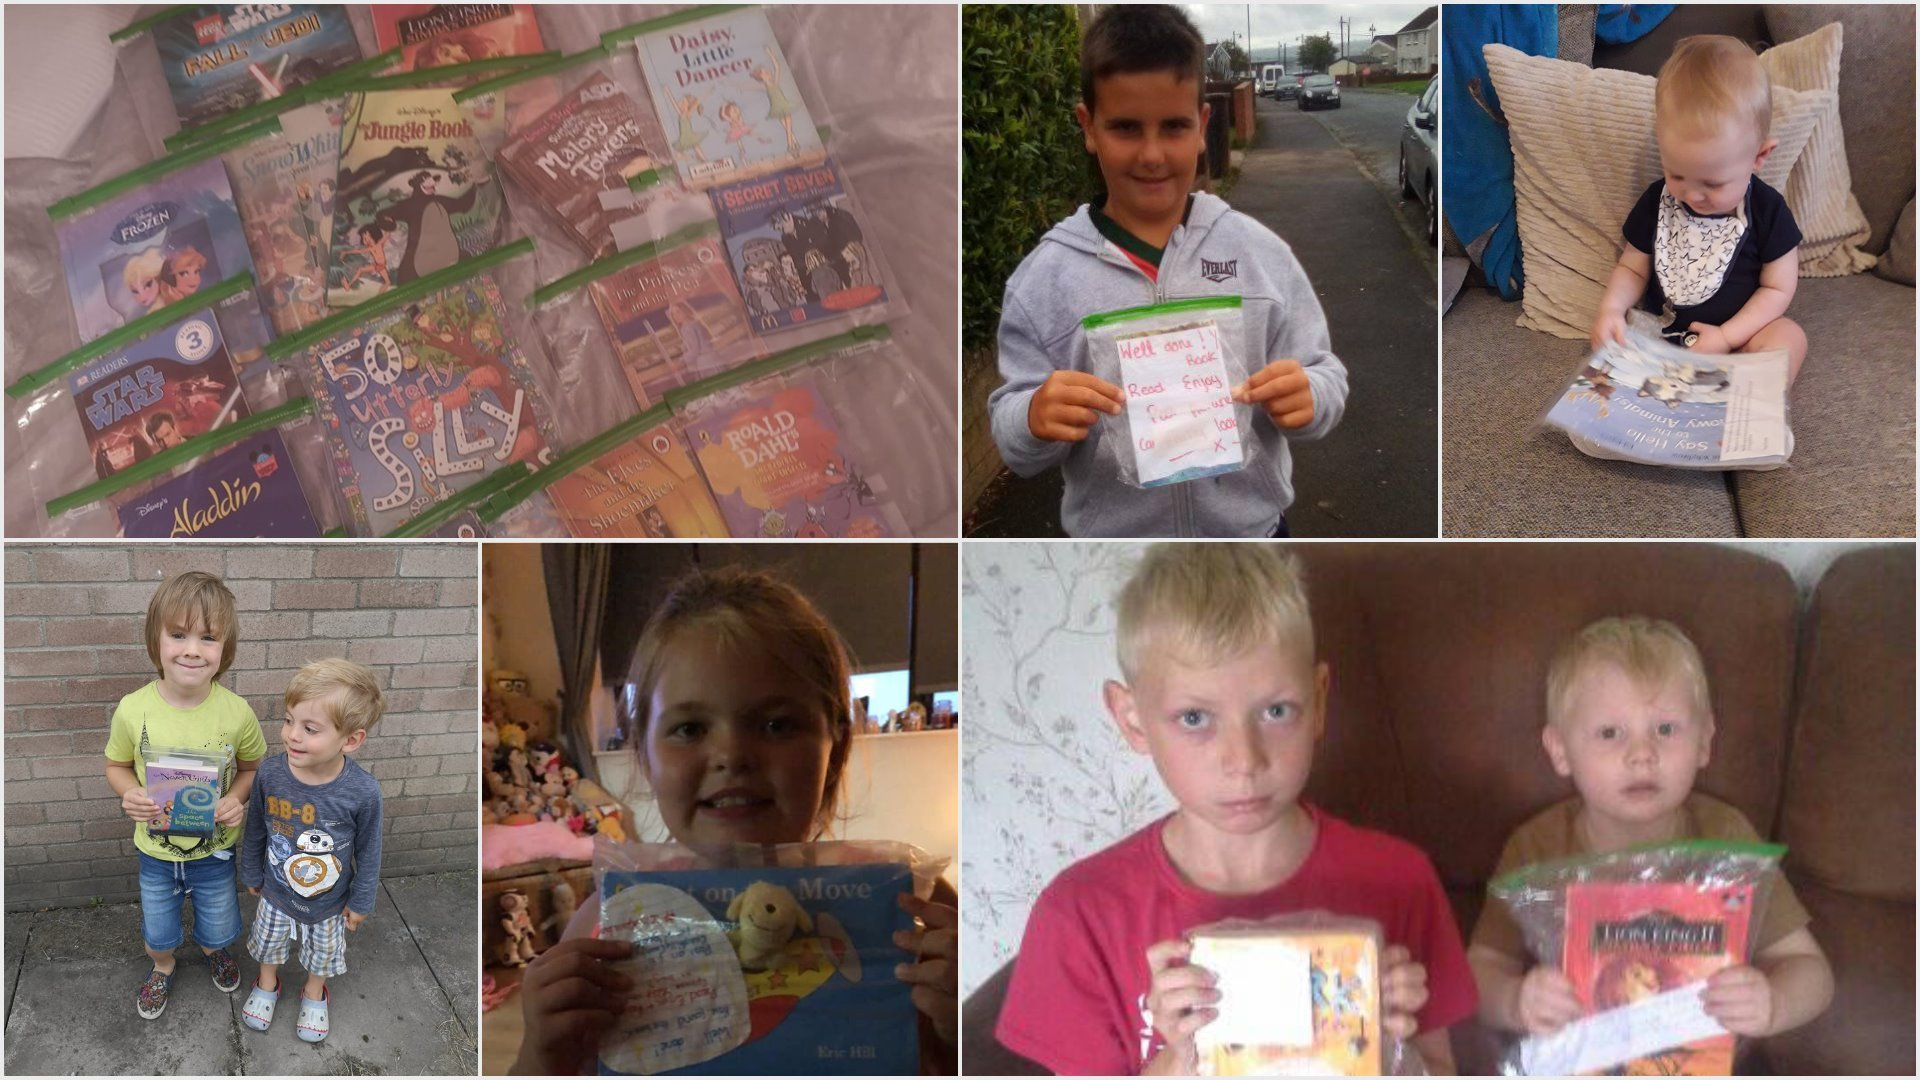 Look for a Book hunts sweeping across Caerphilly County Borough